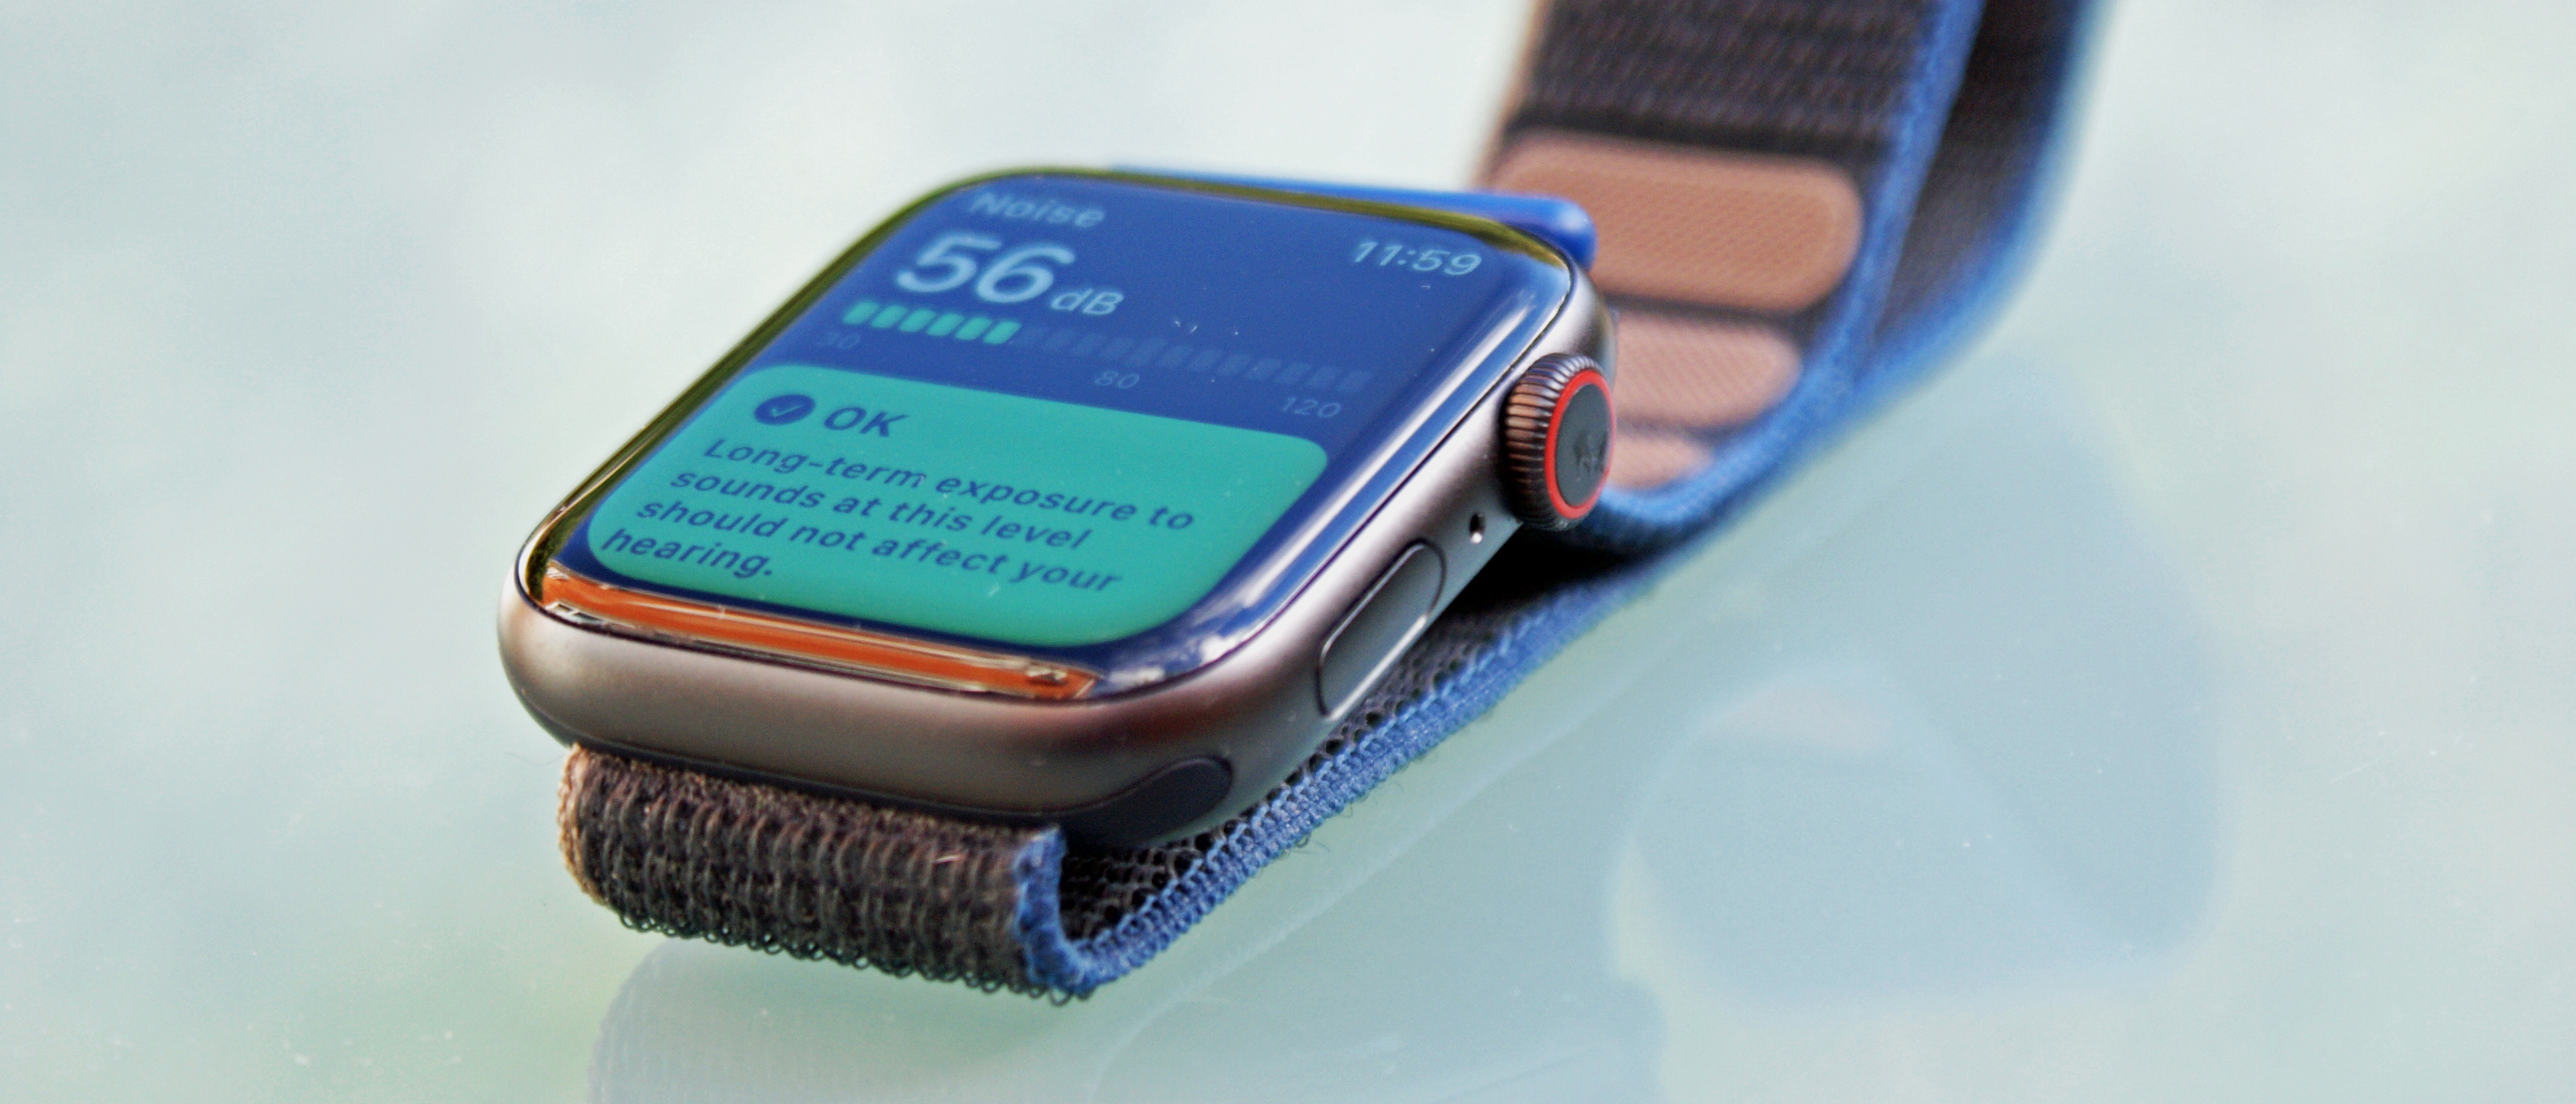 Apple Watch SE review: The smartwatch to buy for many | TechRadar